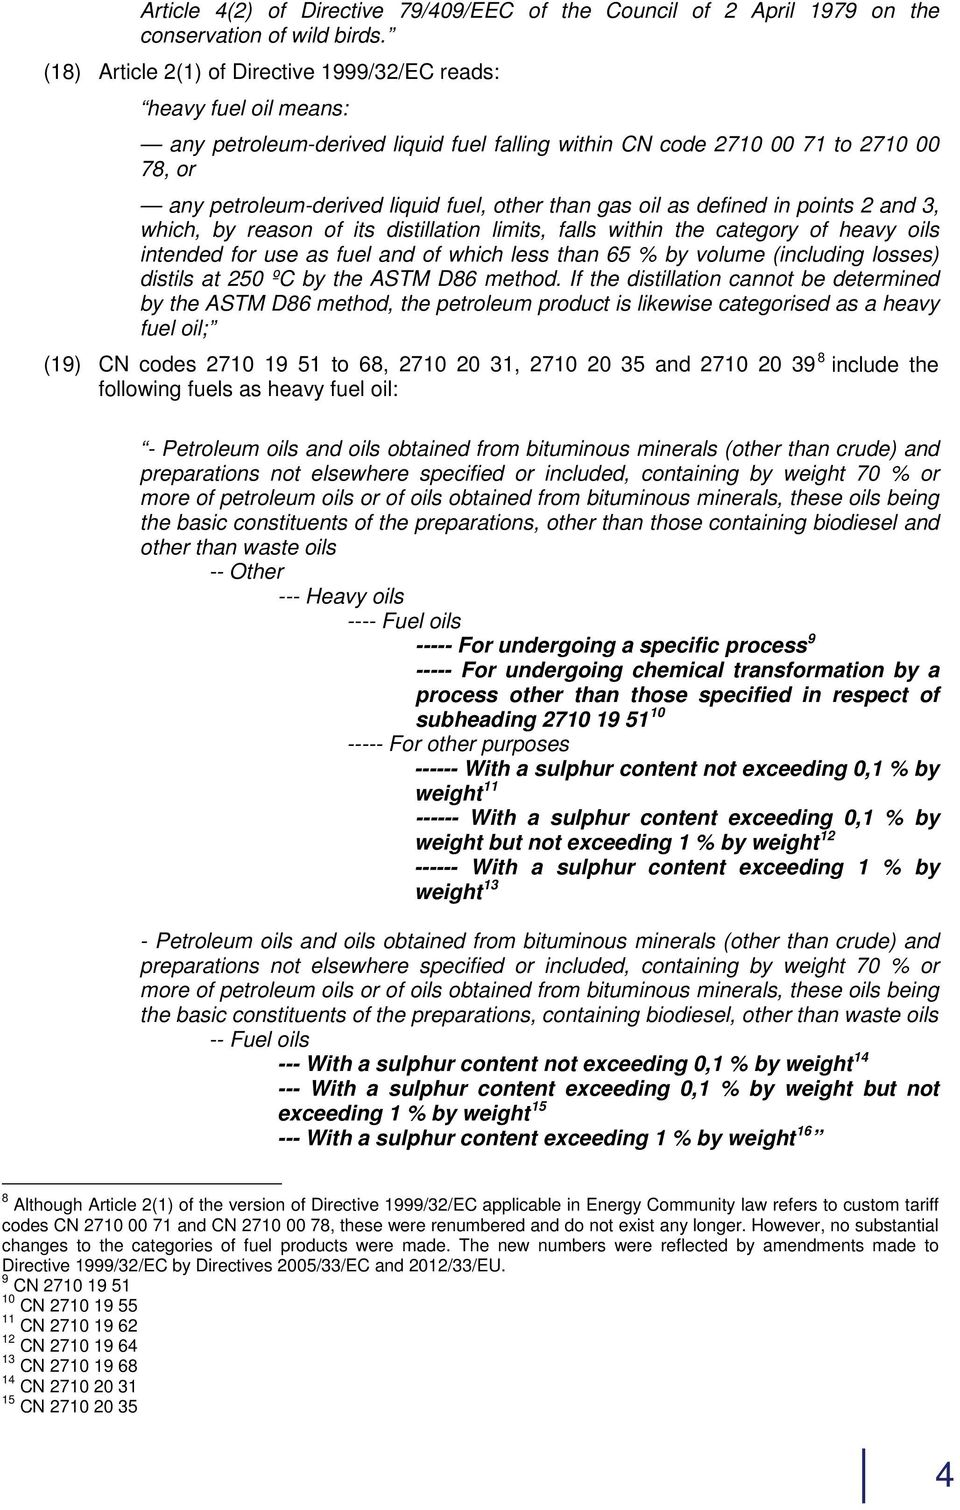 than gas oil as defined in points 2 and 3, which, by reason of its distillation limits, falls within the category of heavy oils intended for use as fuel and of which less than 65 % by volume